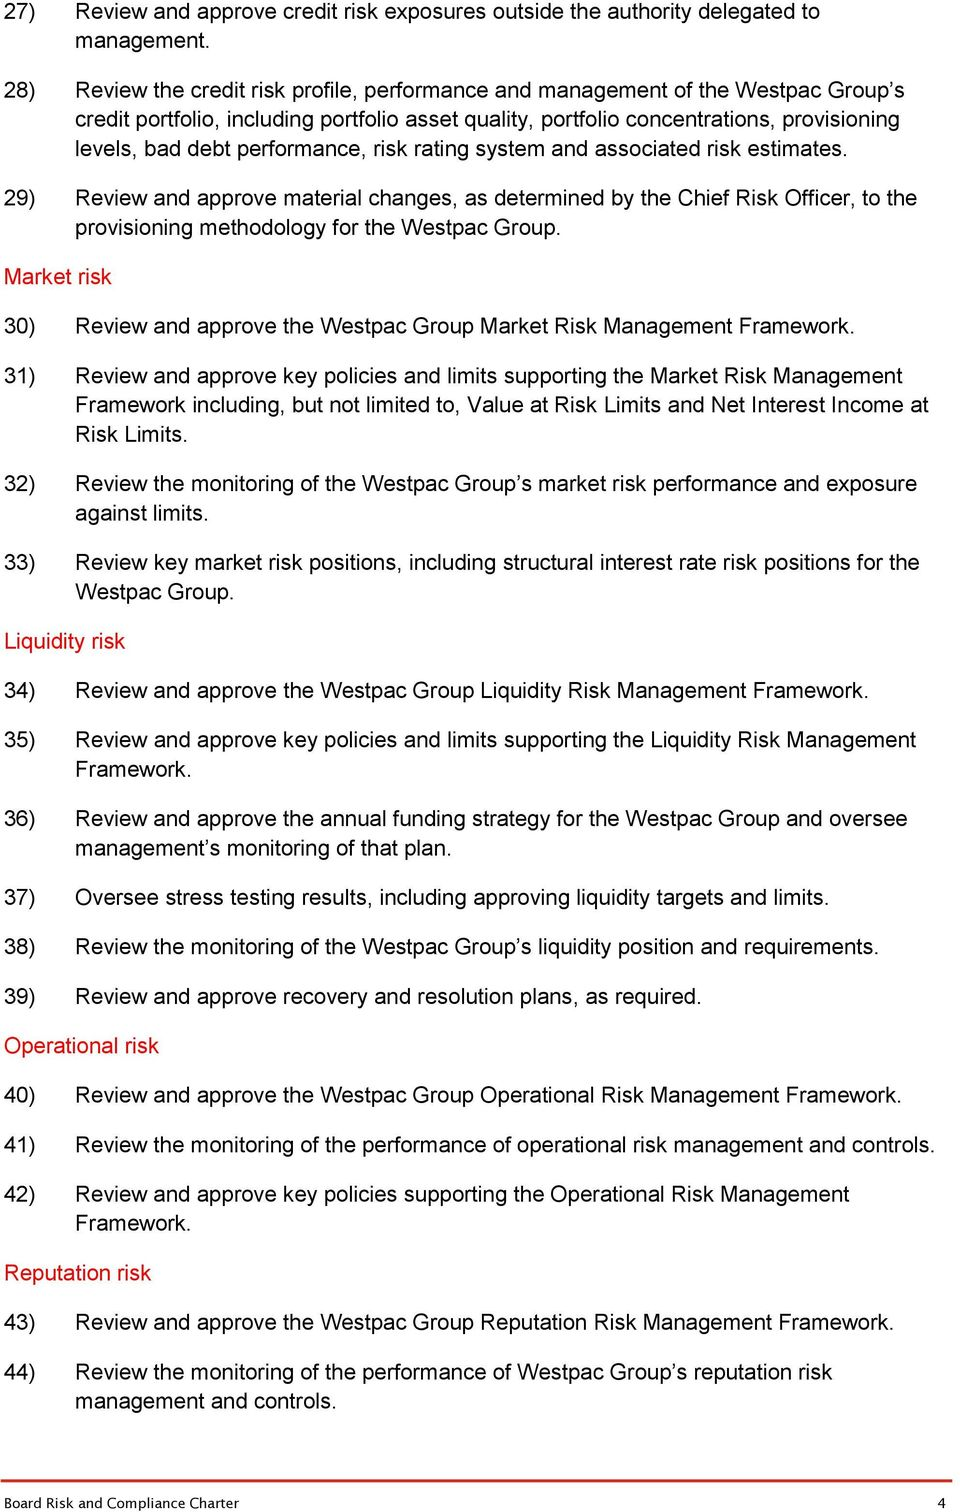 performance, risk rating system and associated risk estimates. 29) Review and approve material changes, as determined by the Chief Risk Officer, to the provisioning methodology for the Westpac Group.